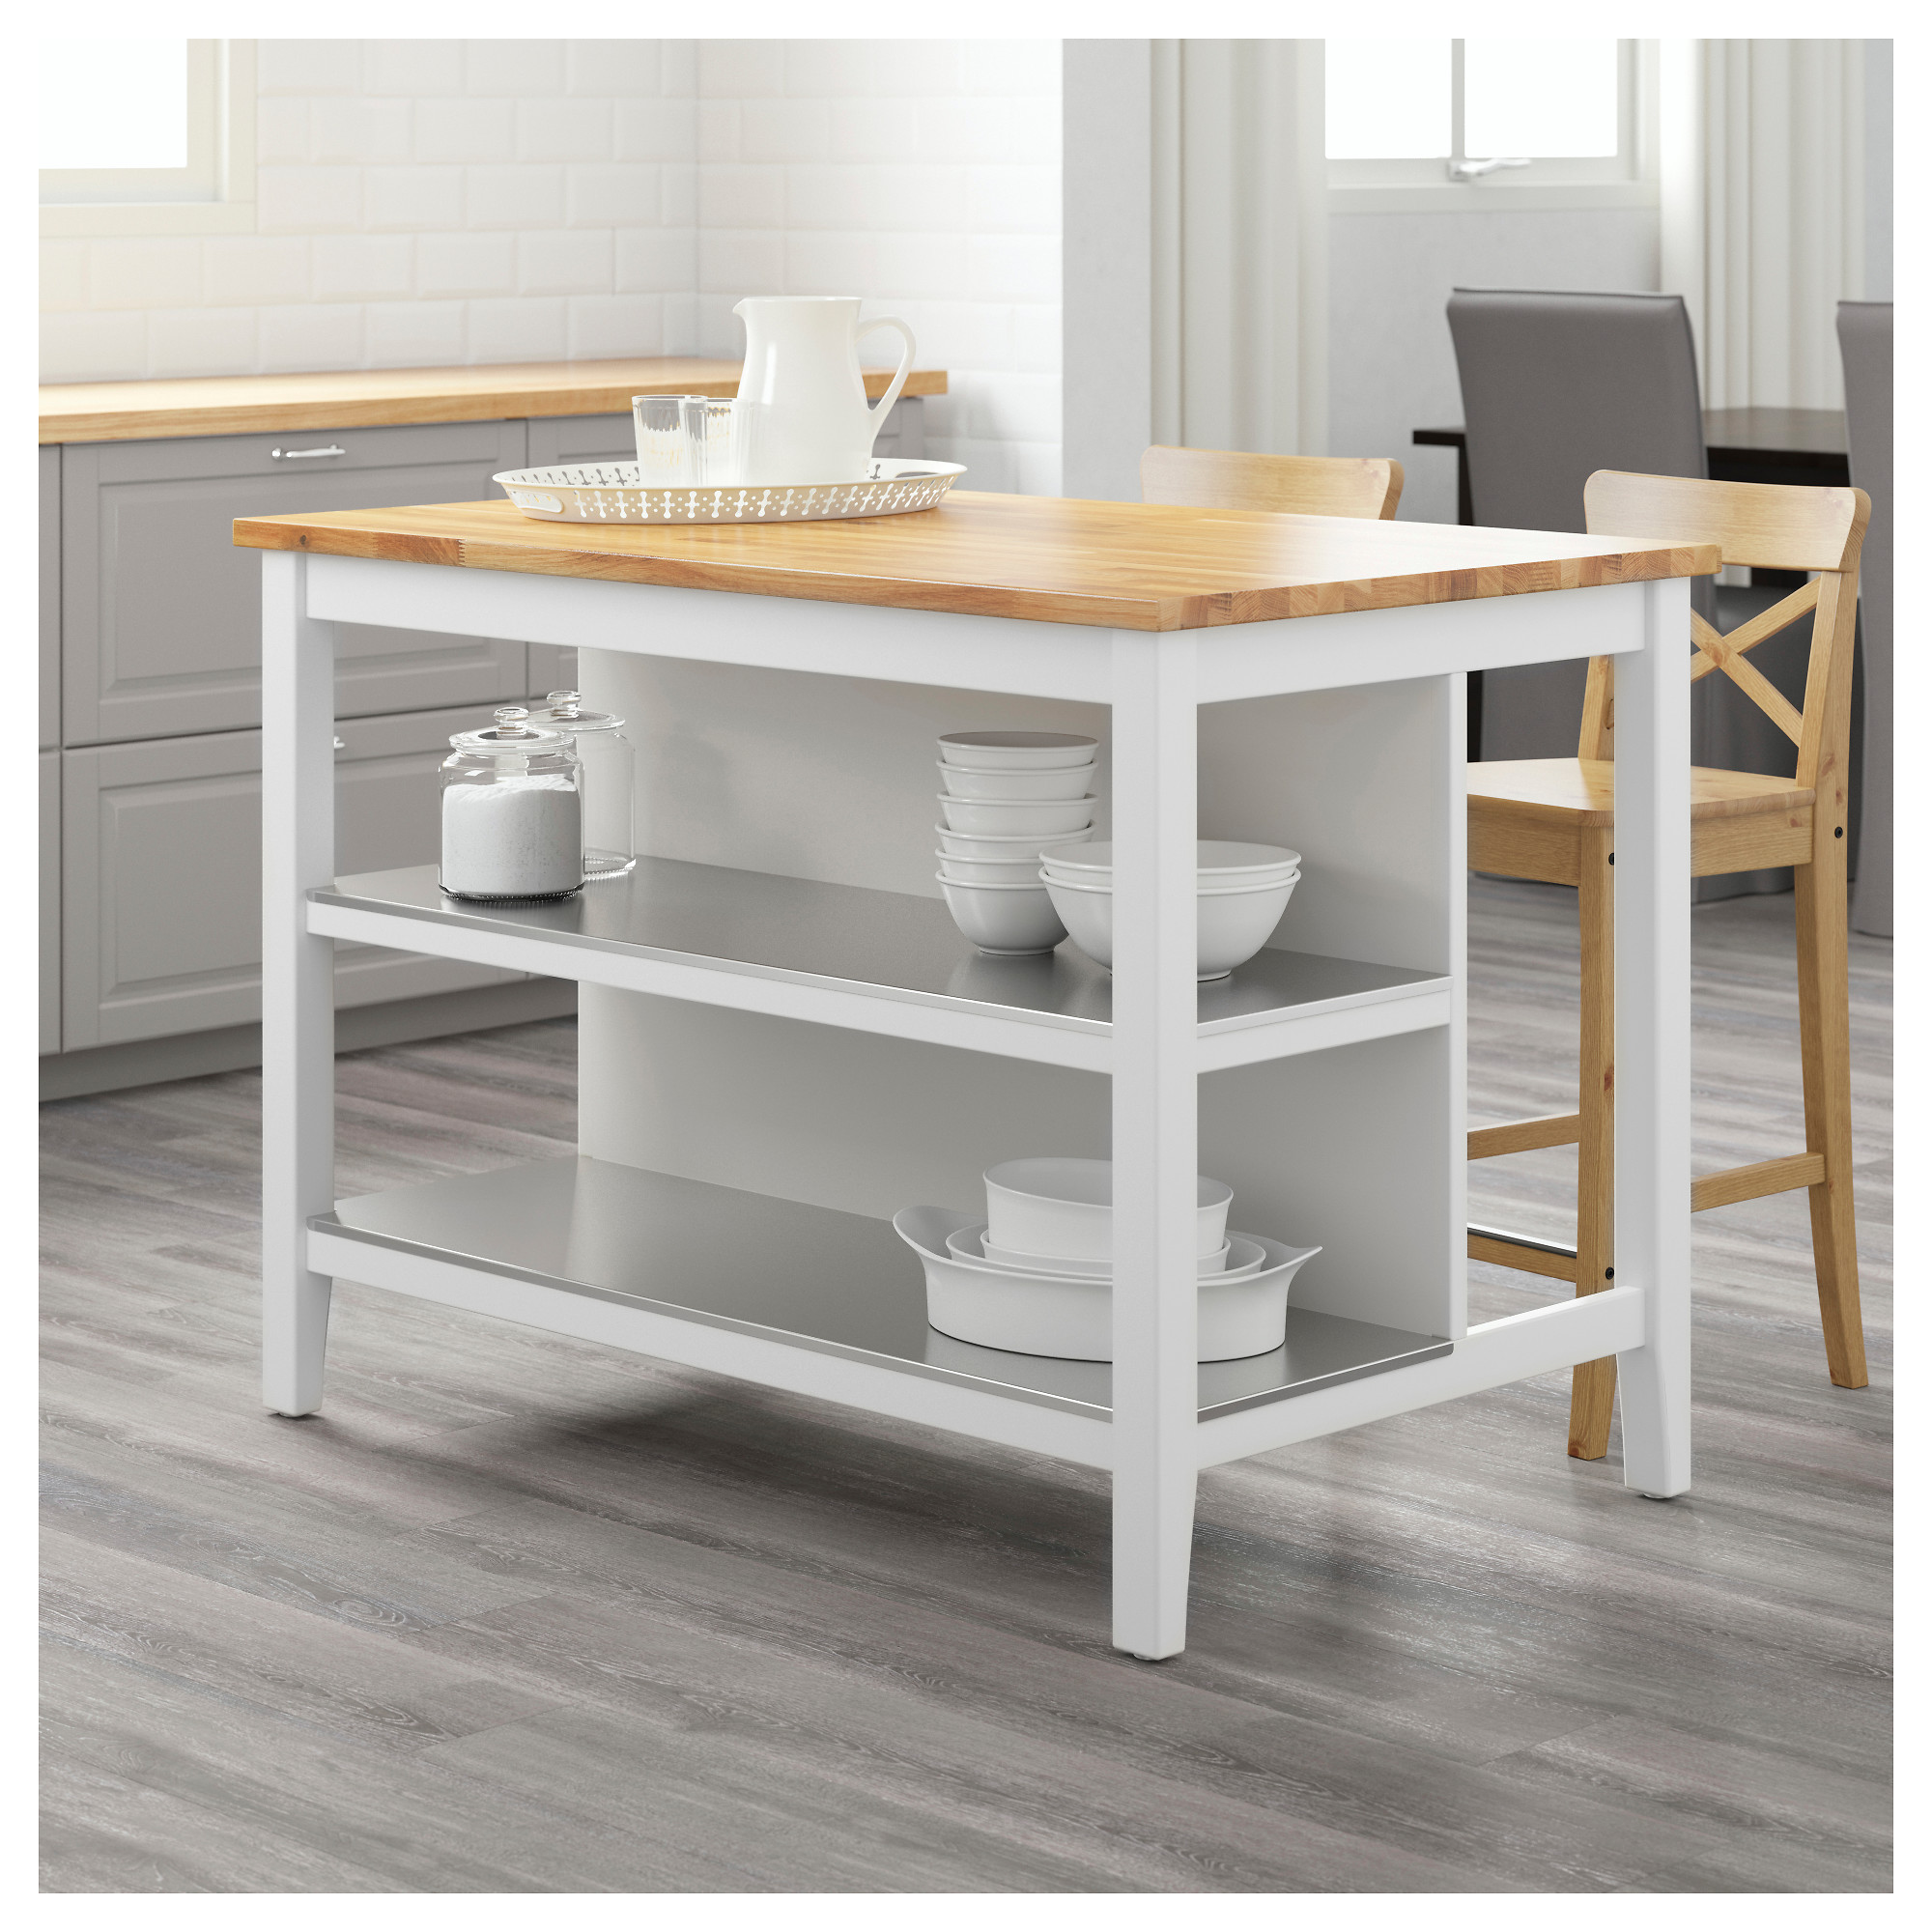 STENSTORP Kitchen Island IKEA - Kitchen islands at ikea